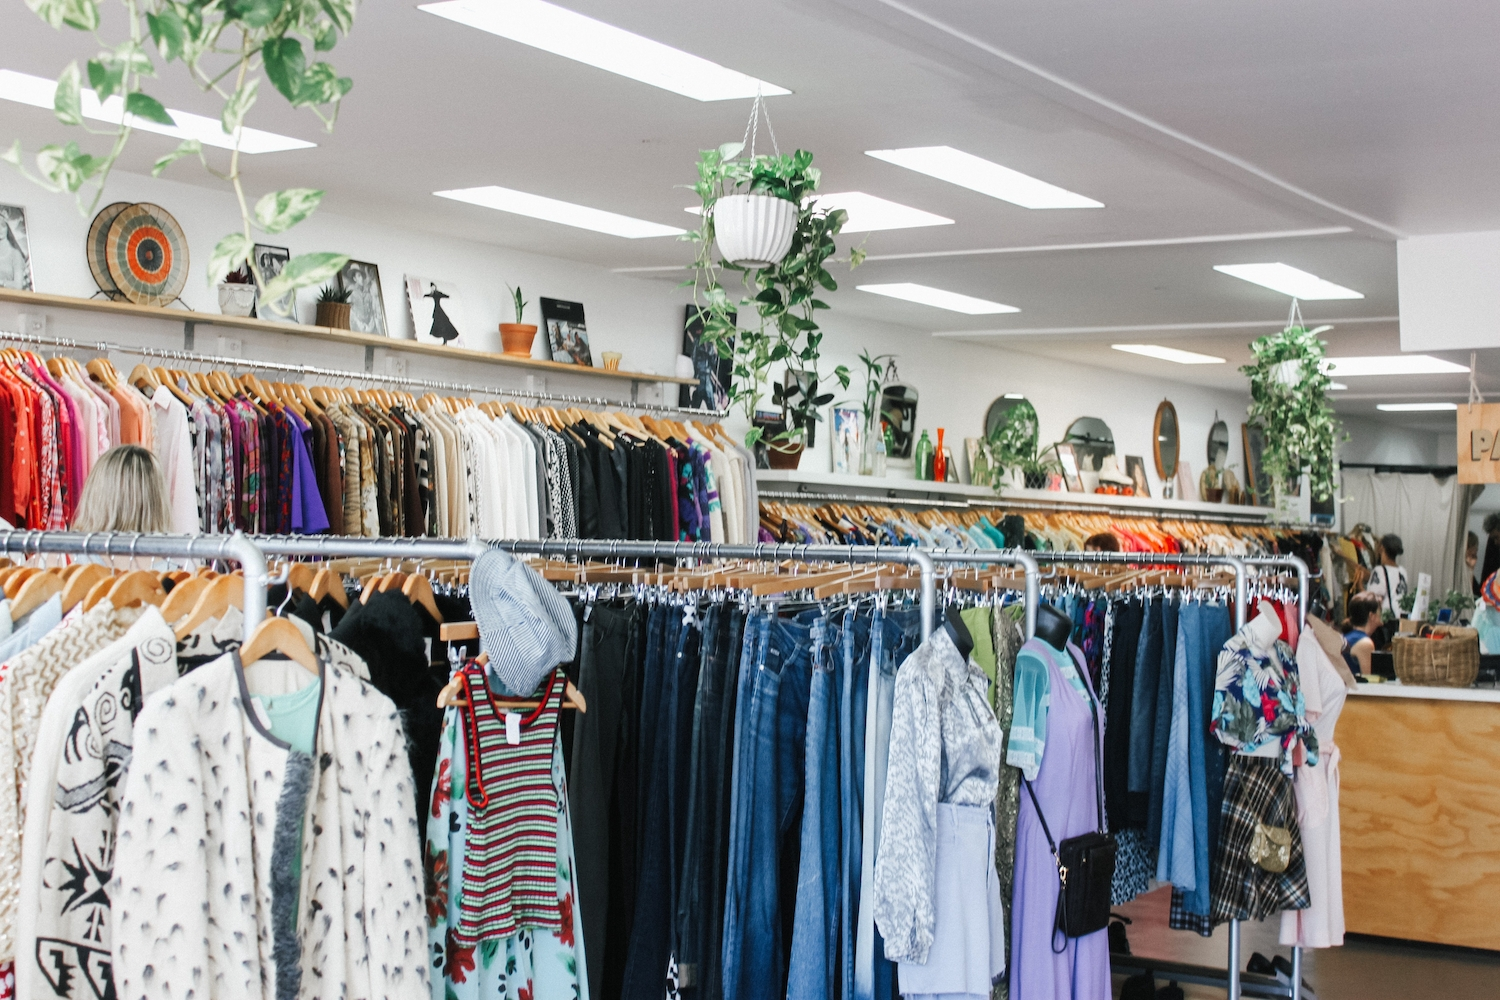 View of clothing for salein a thrift shop